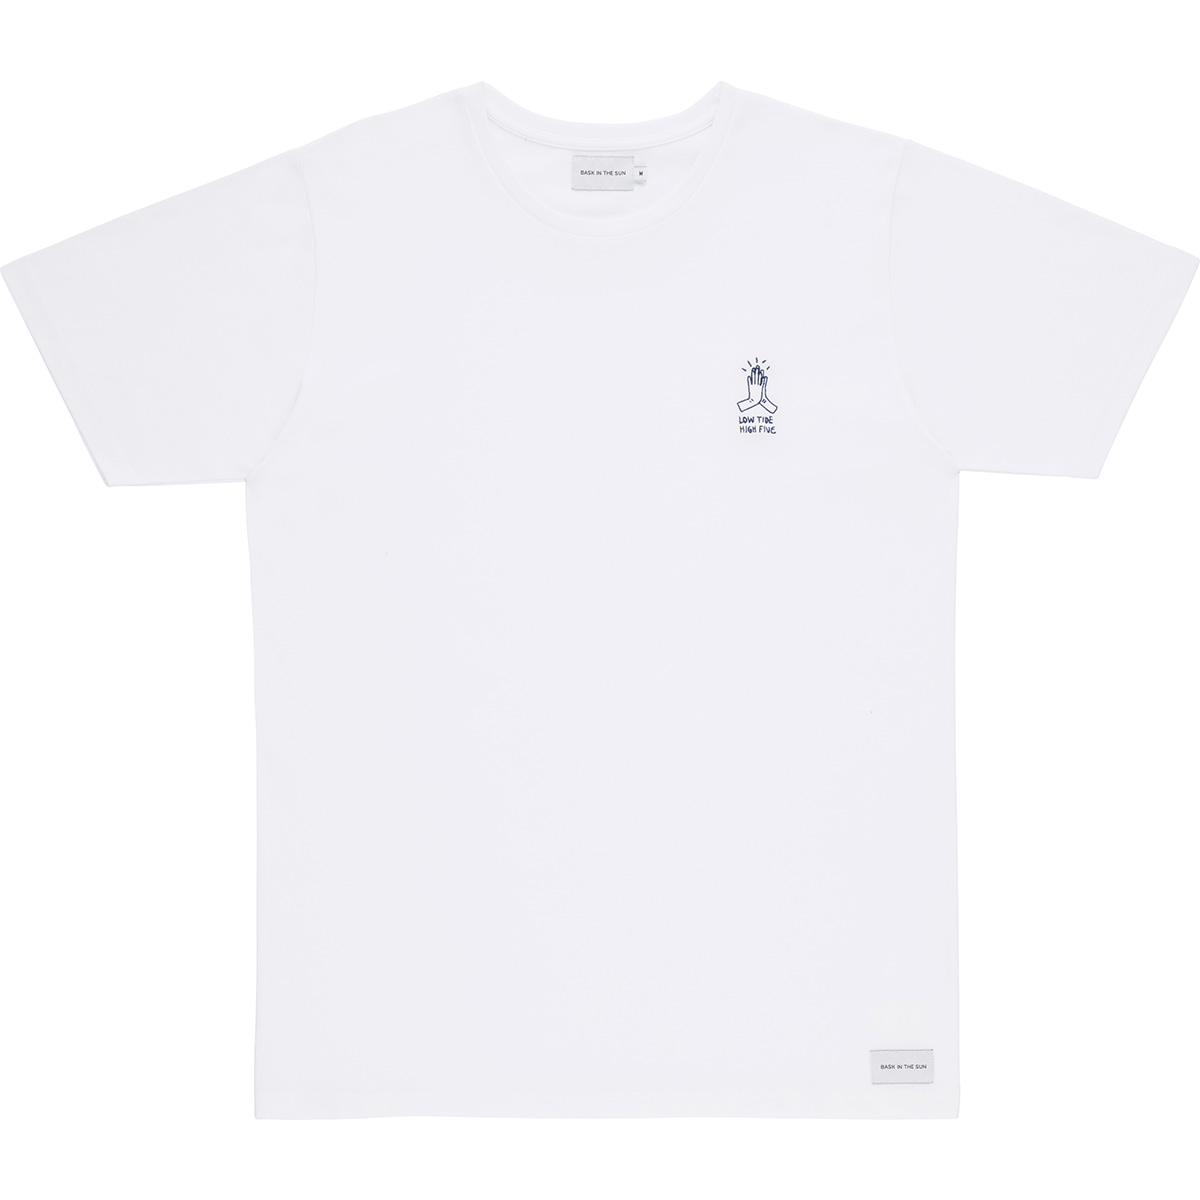 Bask in the Sun - T-shirt en coton bio white high five